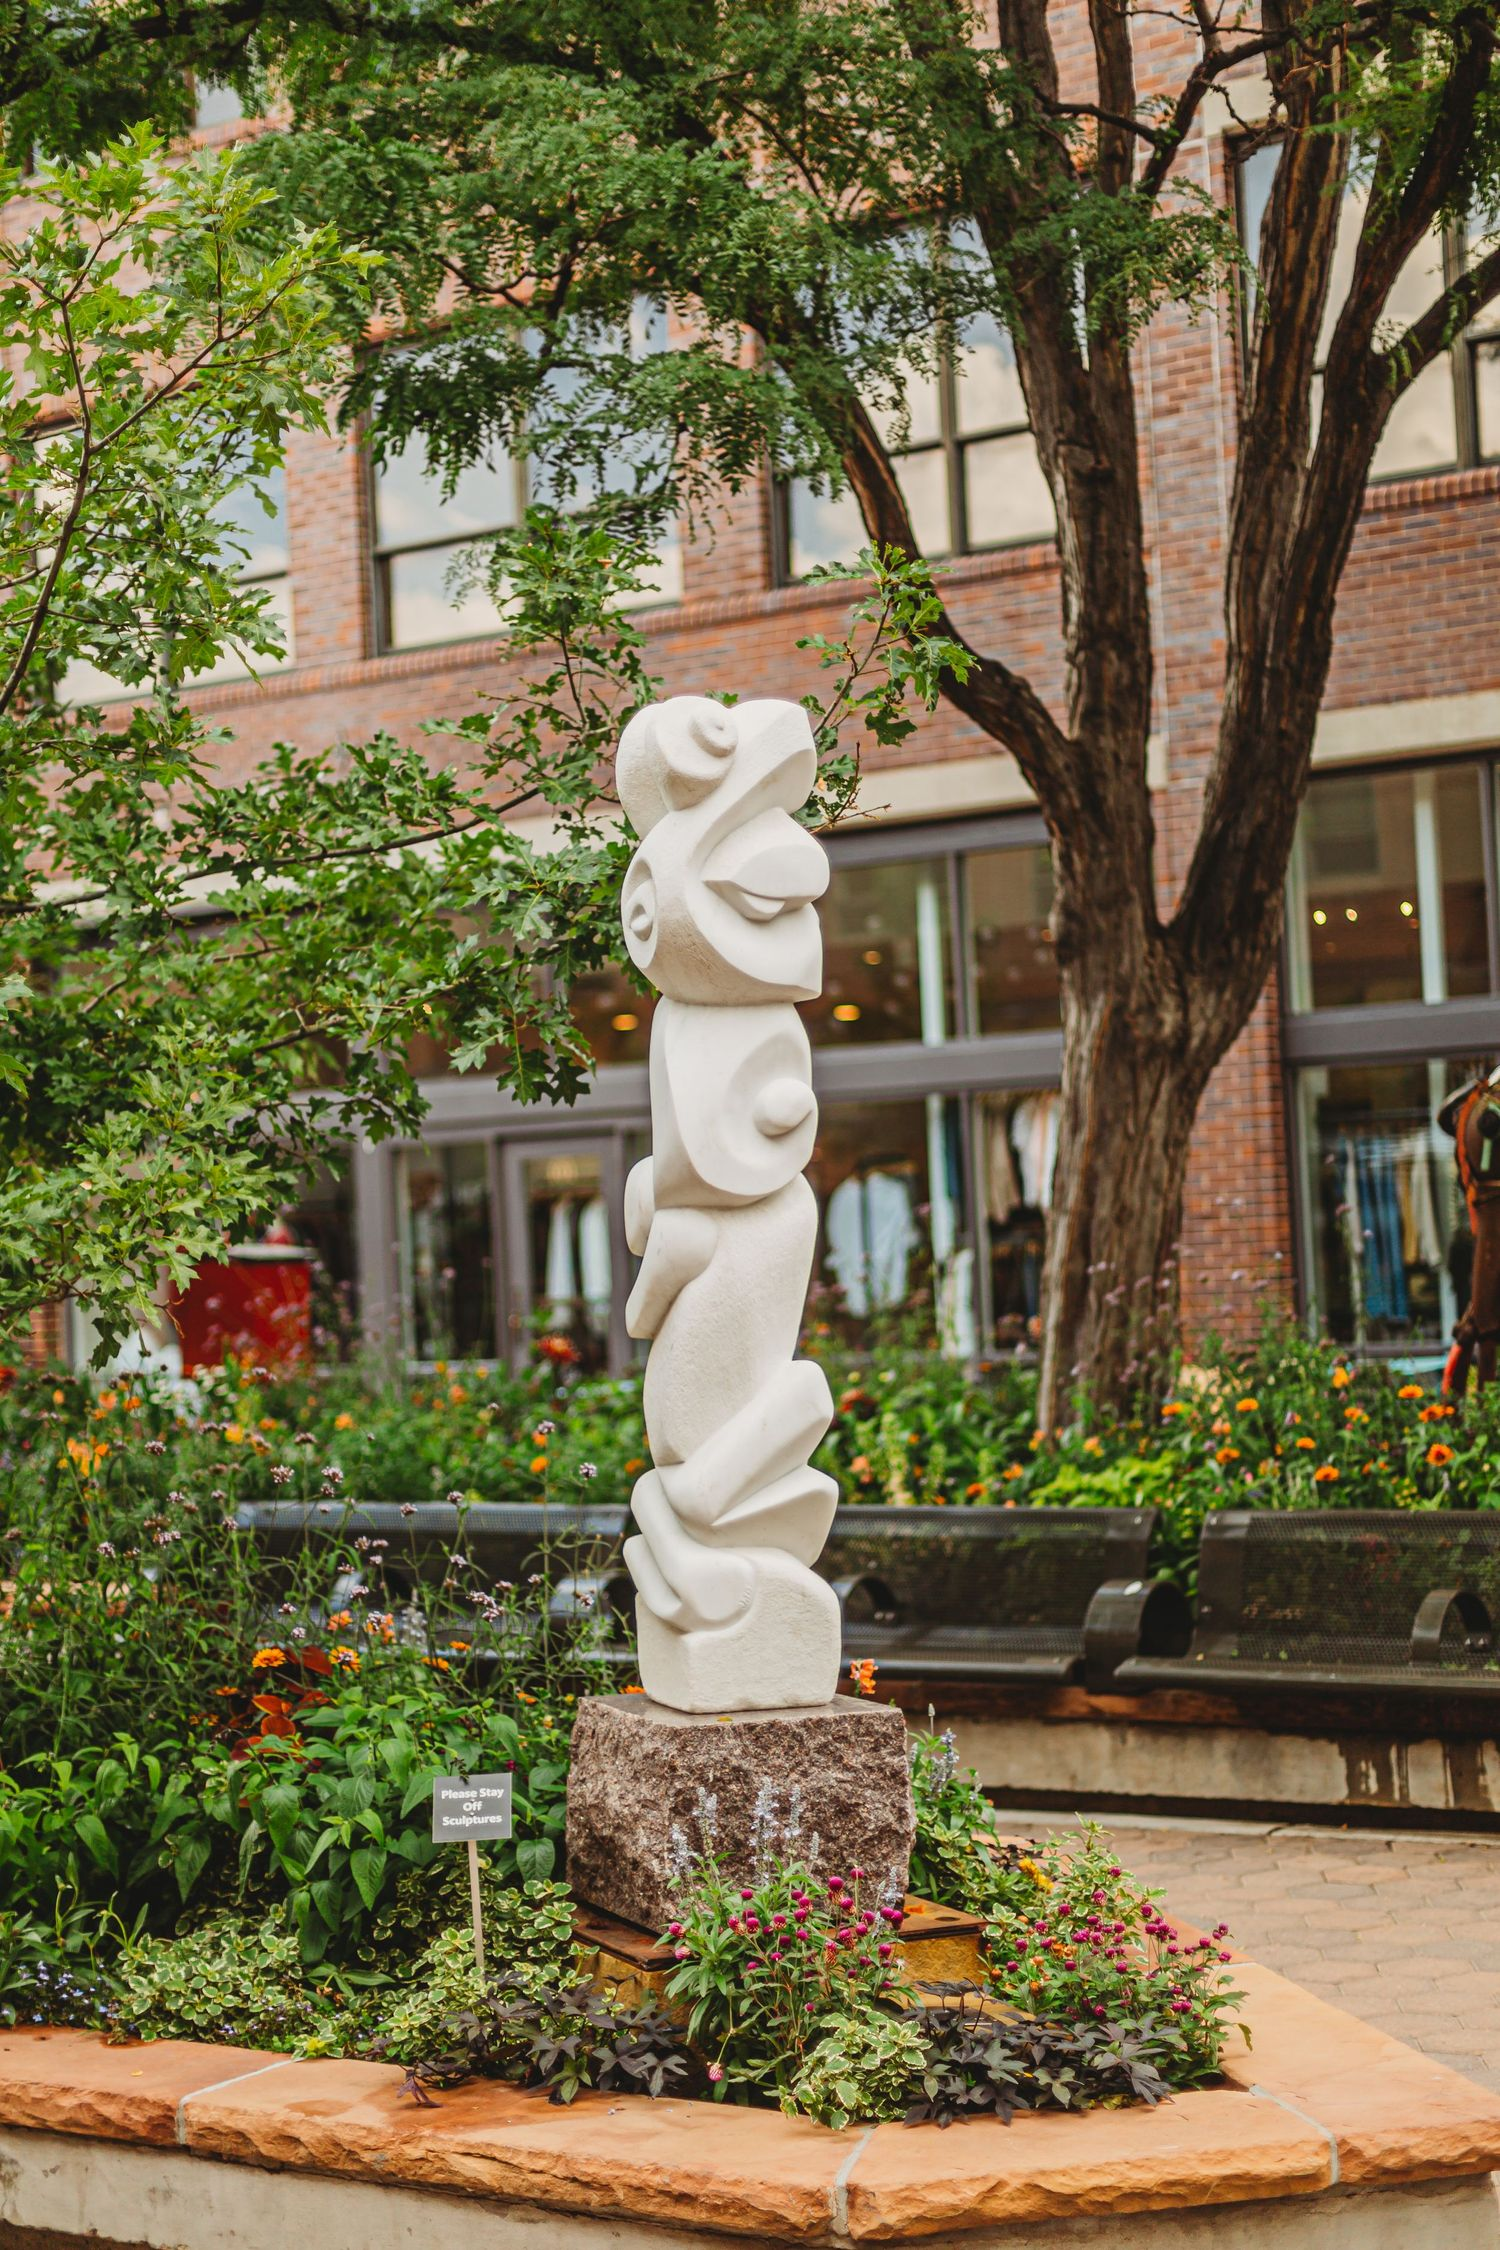 A sculpture in Old Town Square in Fort Collins, Colorado.